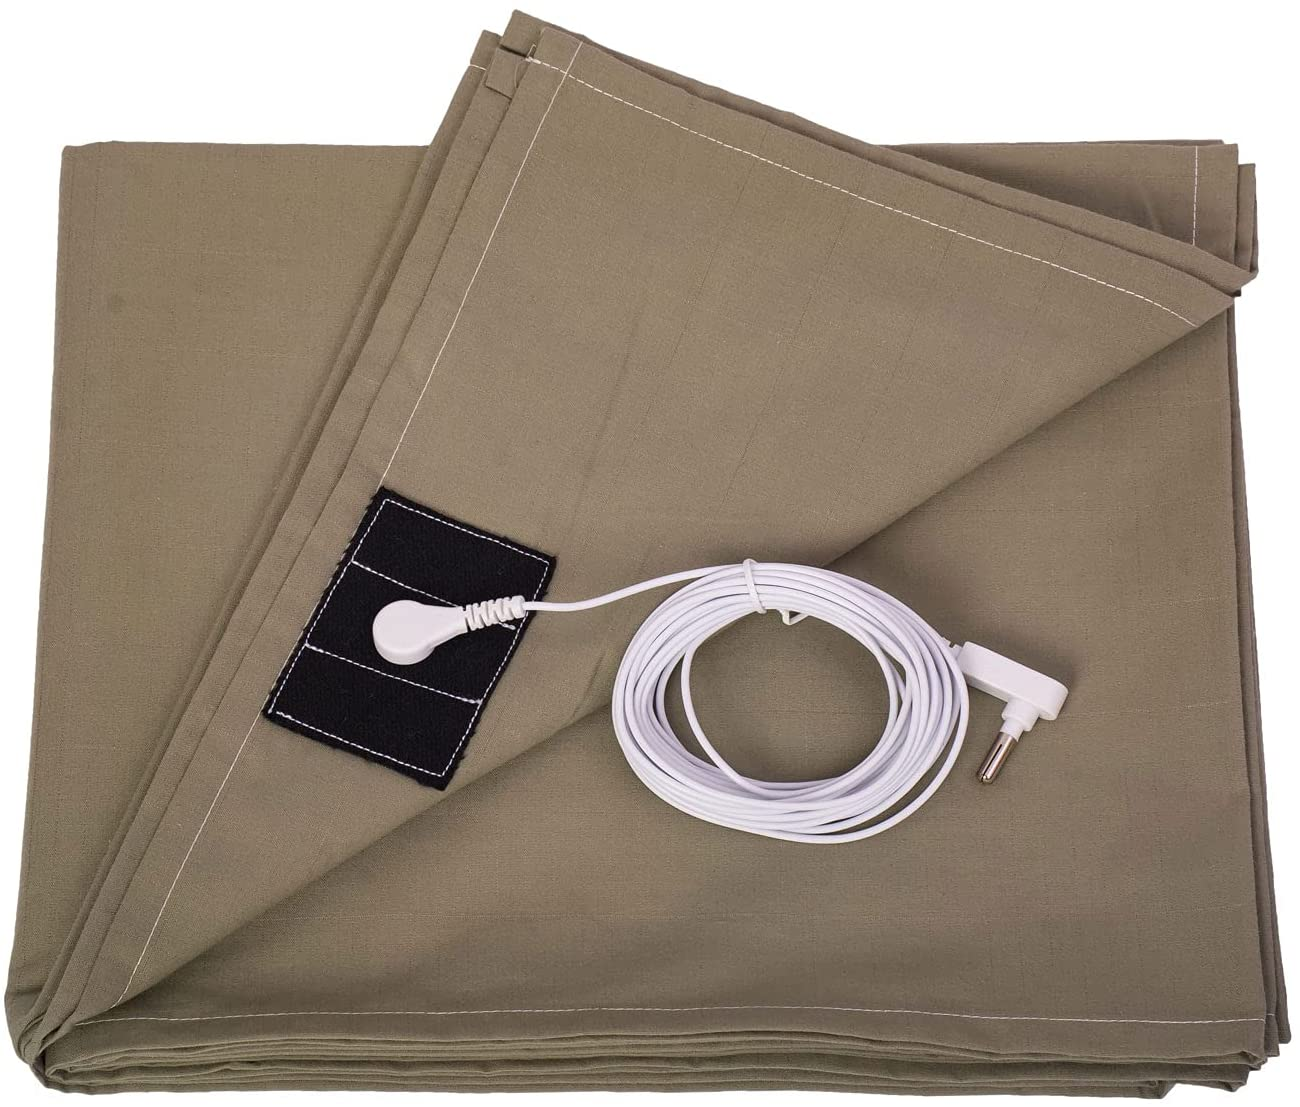 Directly managed store Grounding Sheet 5% Silver Fiber with Cord S Better Super intense SALE for